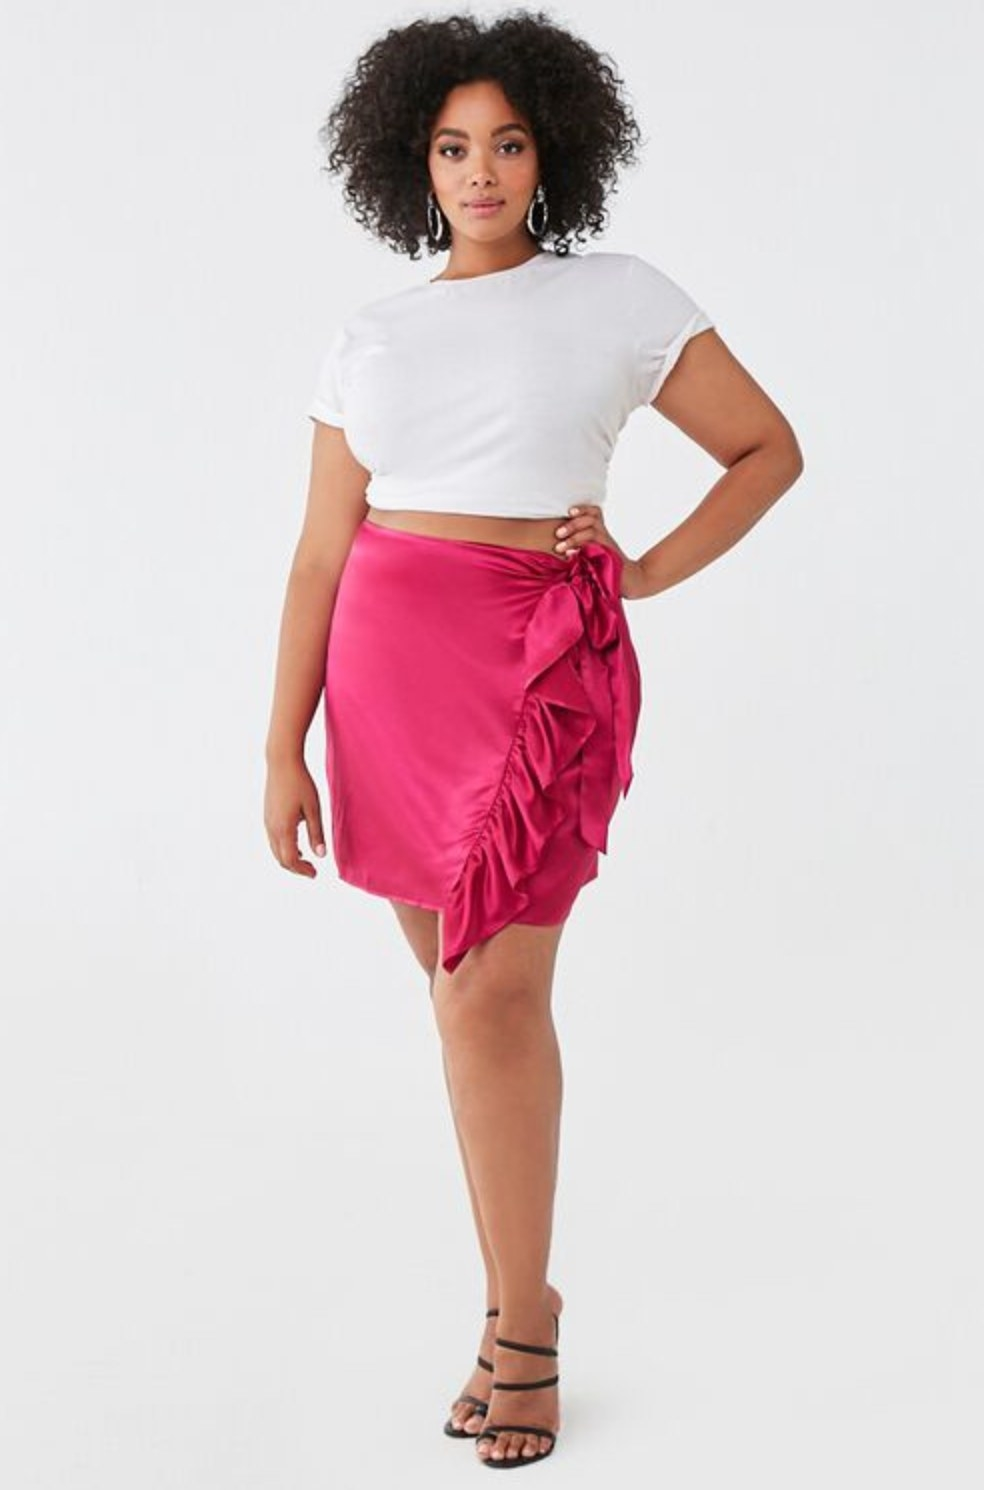 Model wearing the skirt in magenta